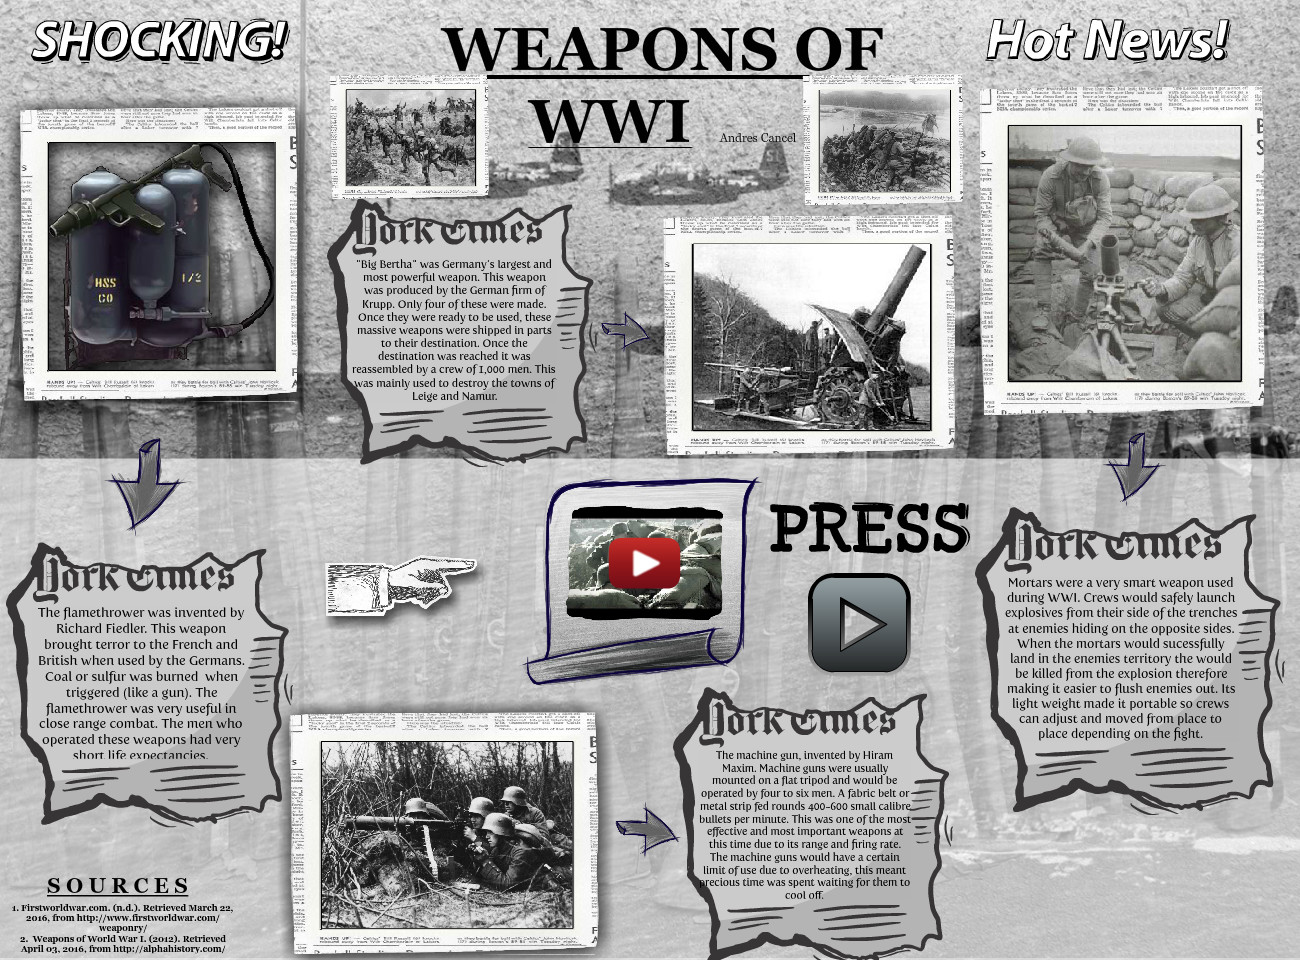 Weapons of WWI